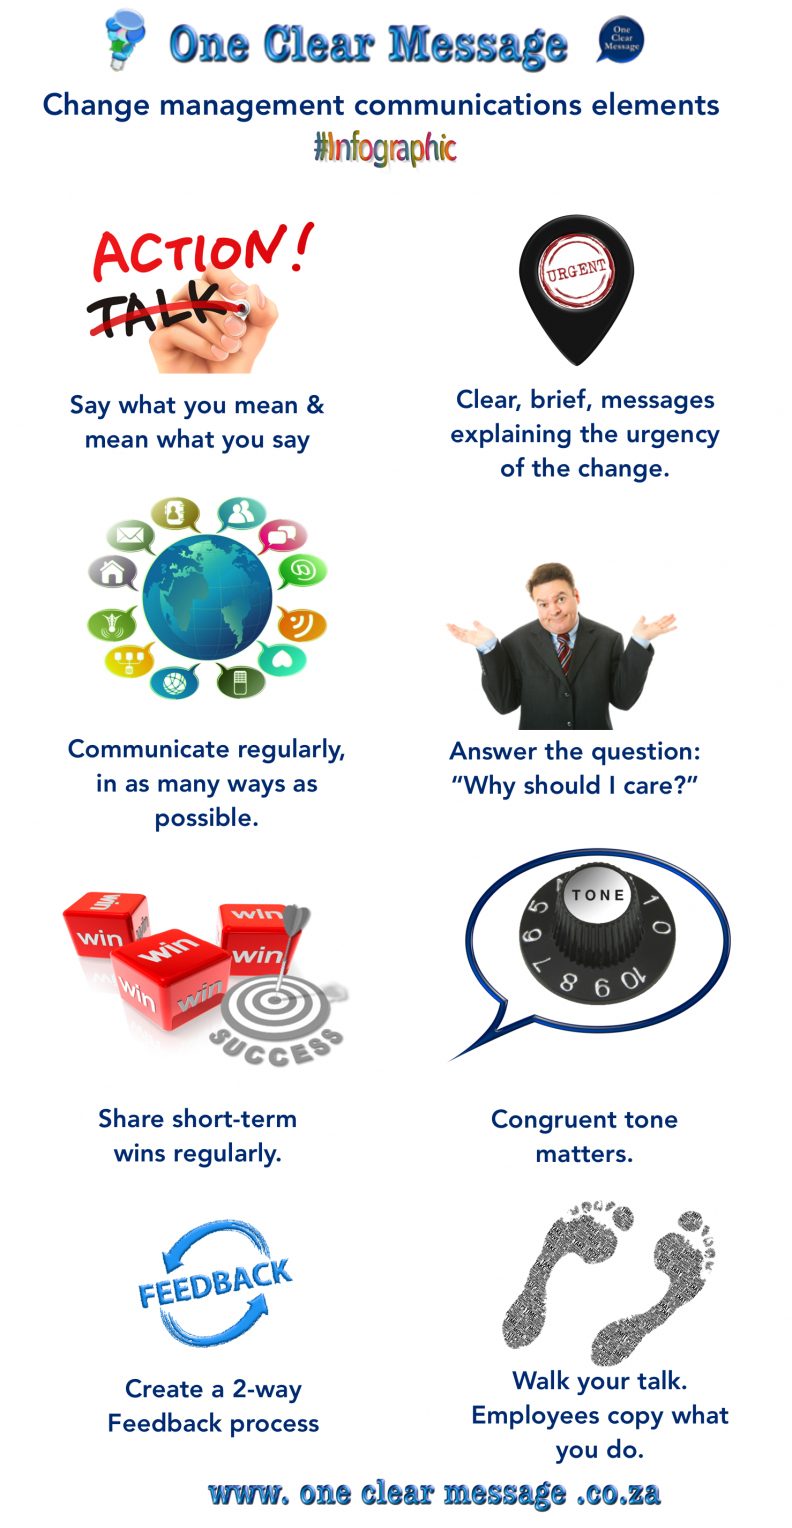 INceive change management and engagement touch-base process Change management communications elements Infographic